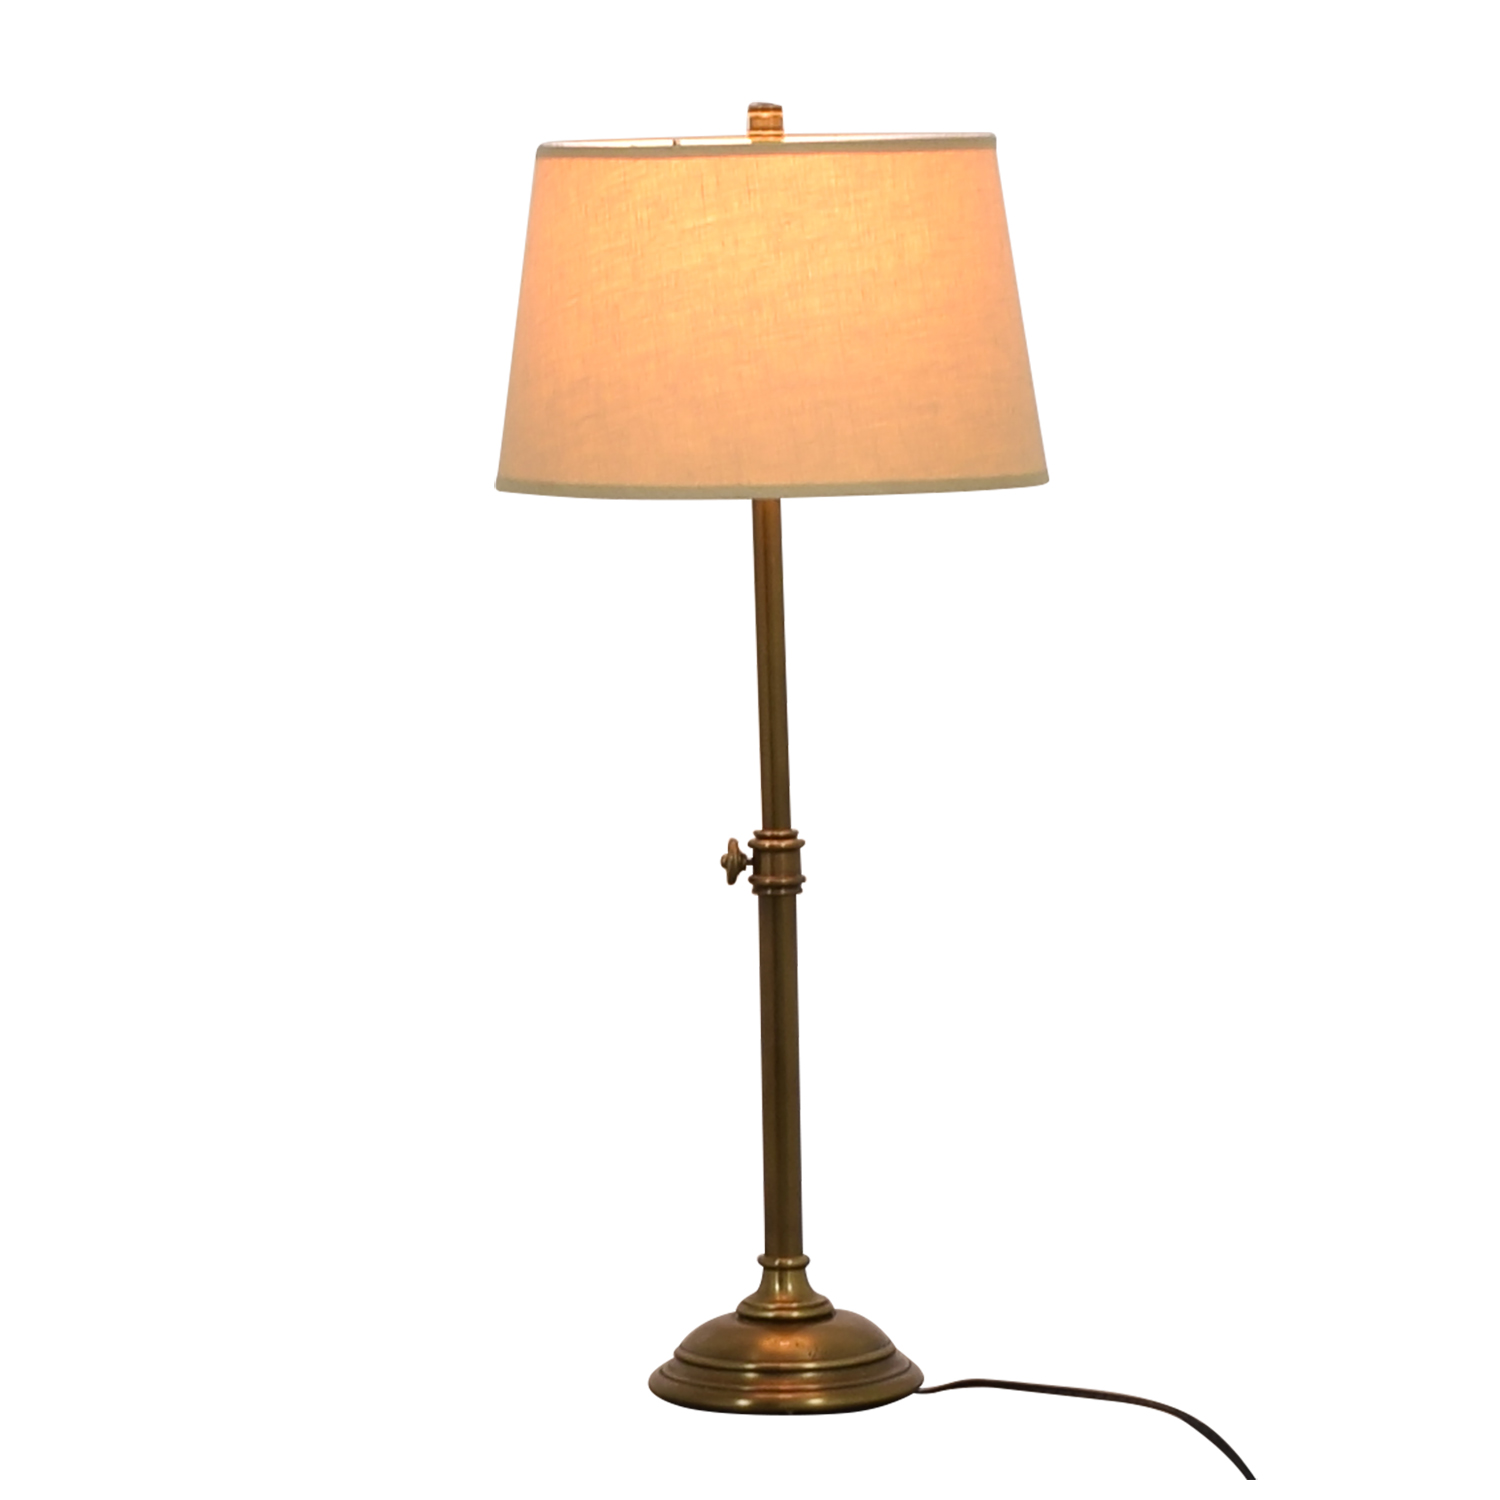 shop Pottery Barn Pottery Barn Chelsea Table Lamp online